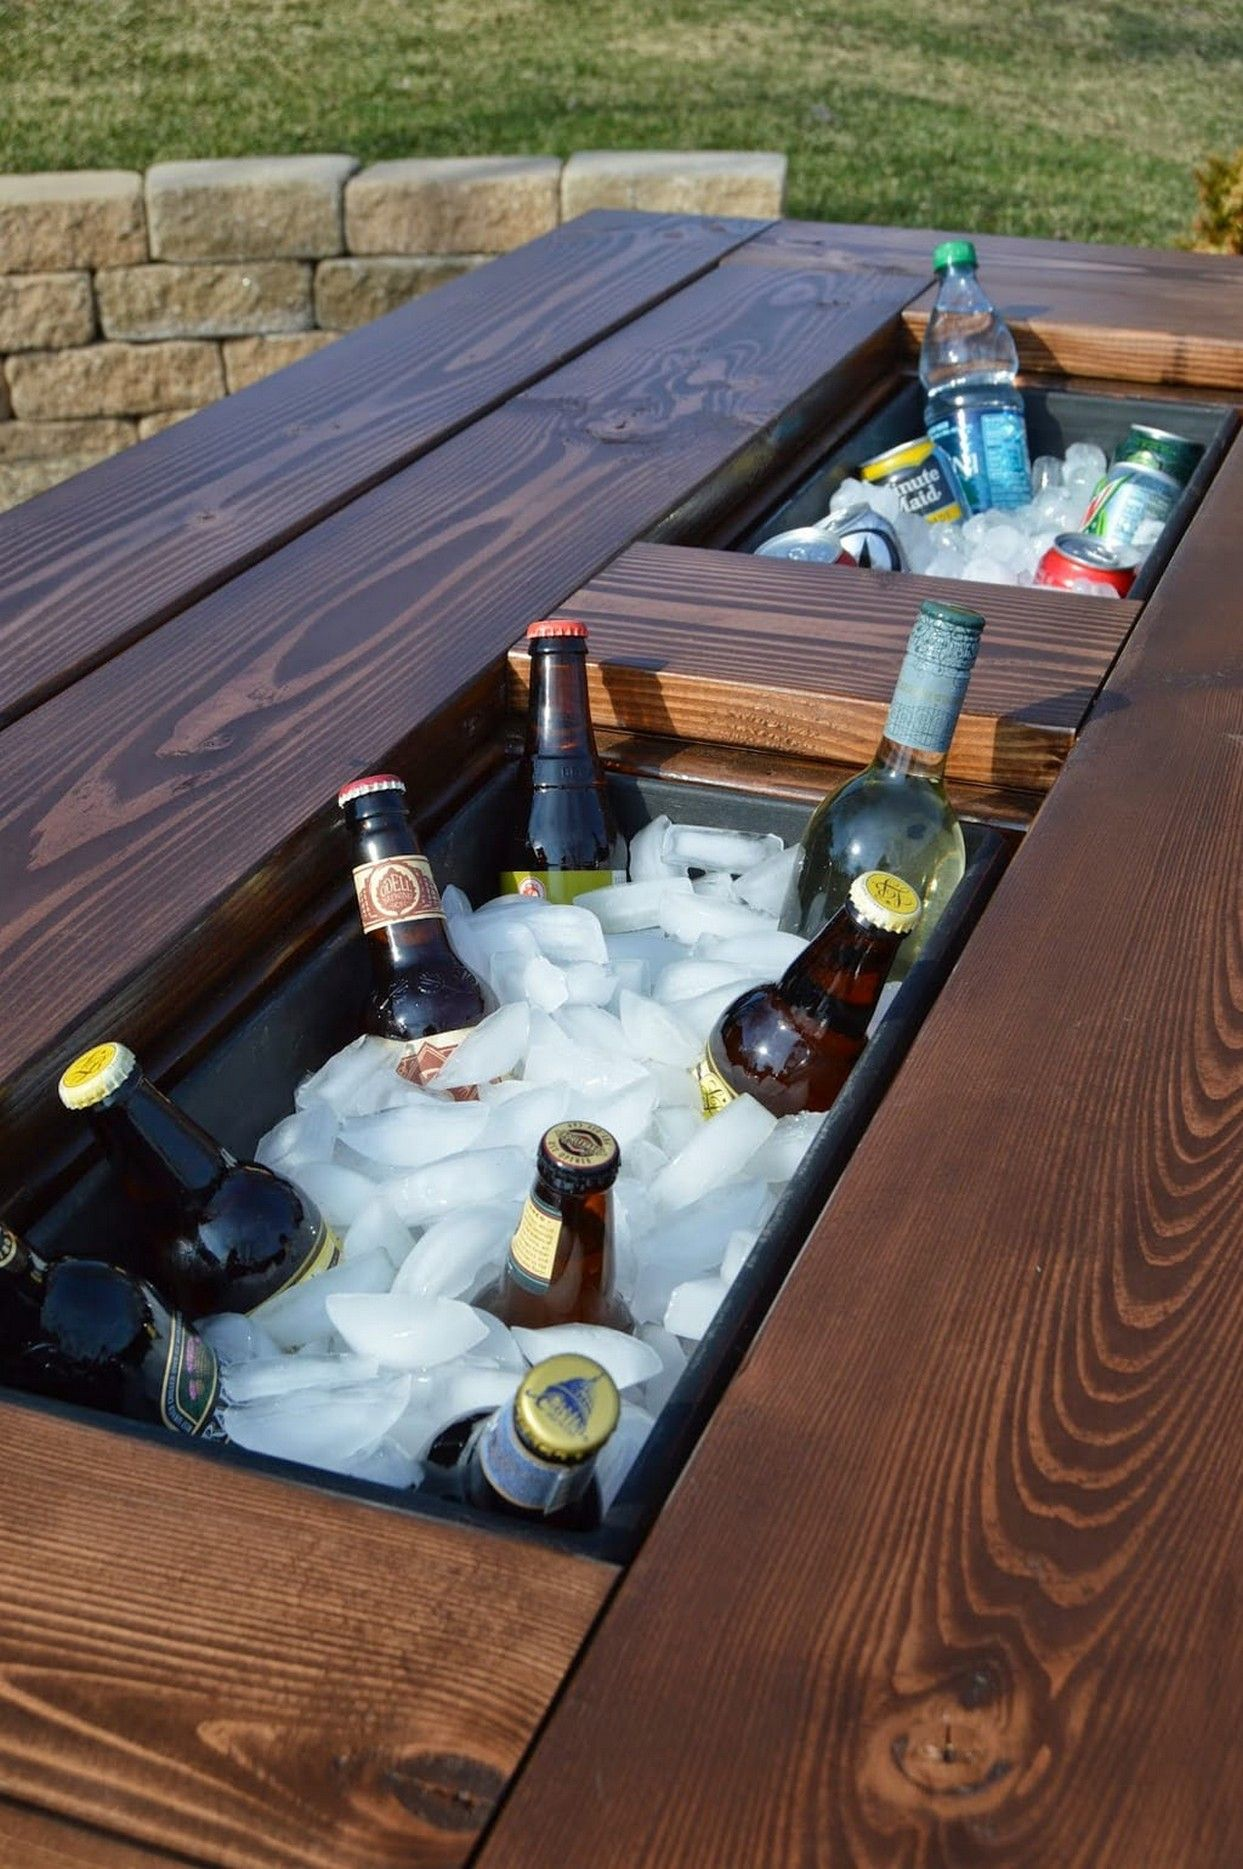 9 Outdoor Furniture Projects For You You Can Try 8 In 2020 Diy Outdoor Furniture Outdoor Diy Projects Patio Cooler